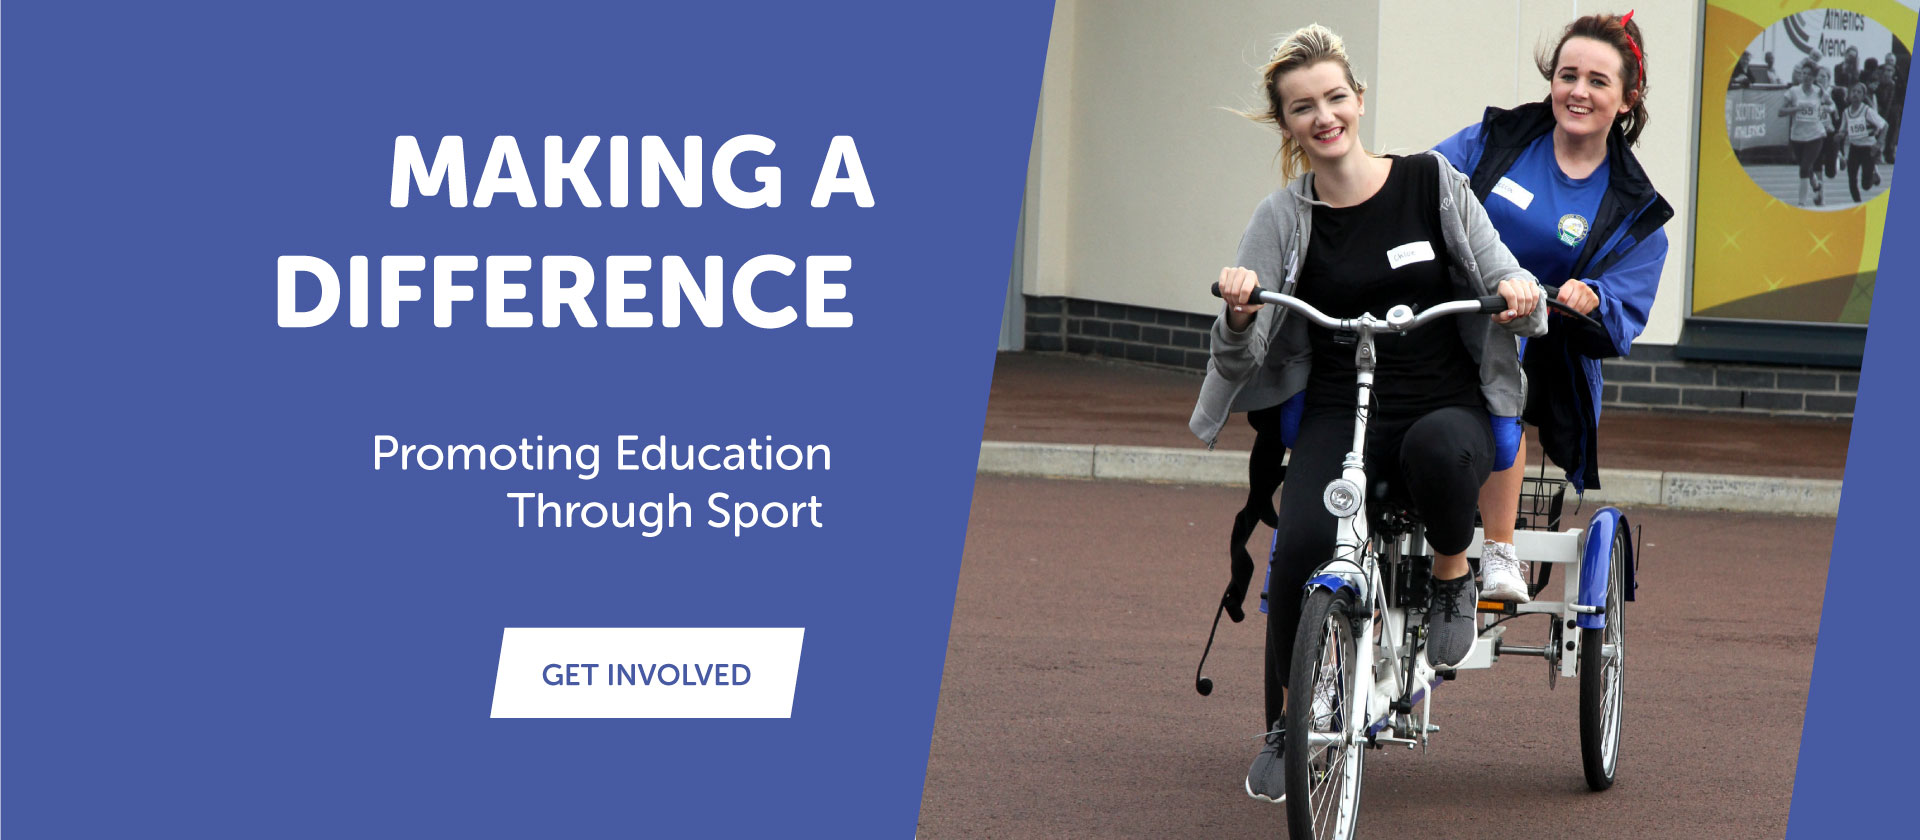 Ayrshire Sportsability education through sport